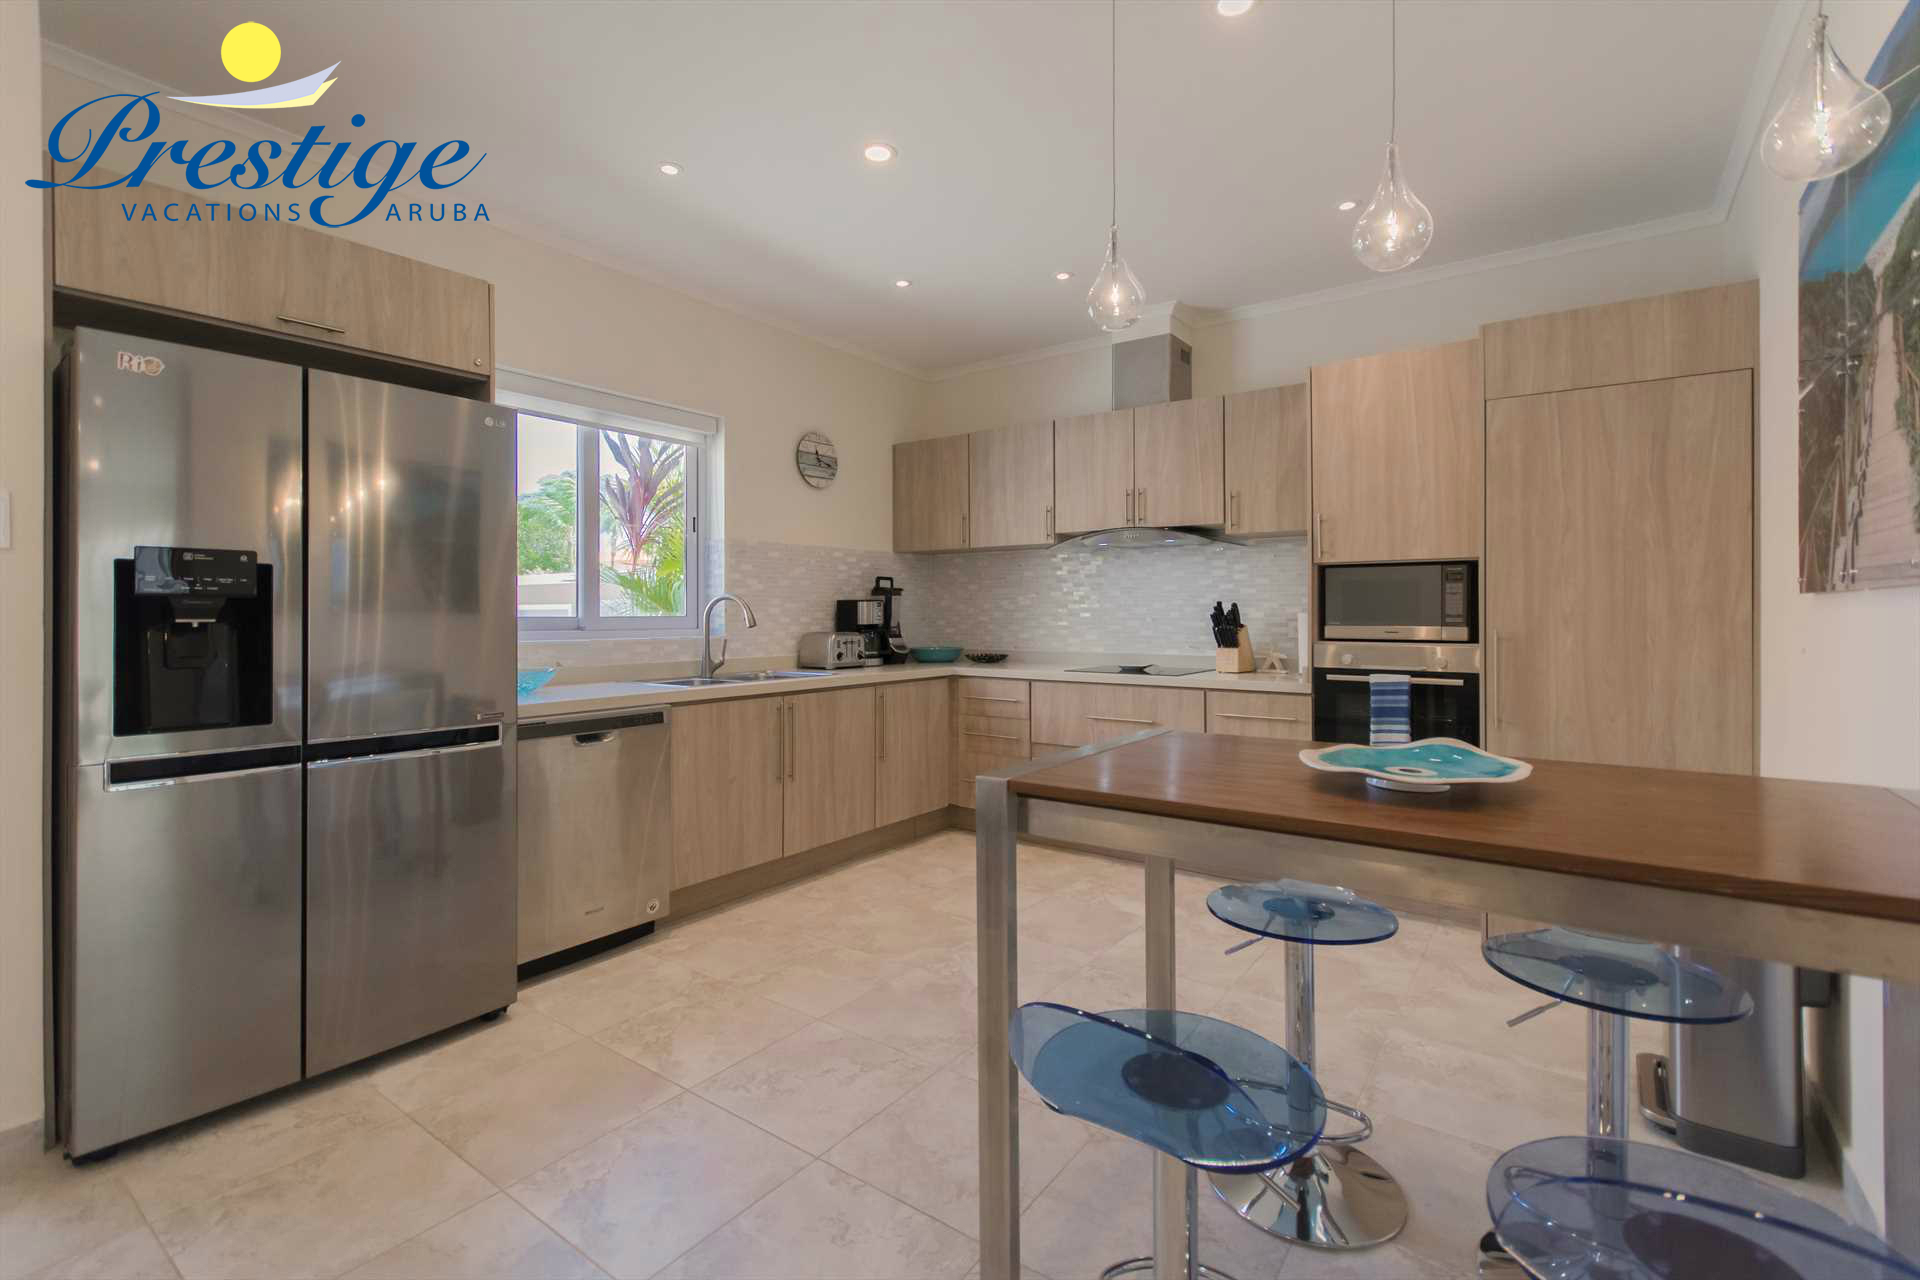 Your large fully equipped kitchen with a breakfast area plus in-room washer/dryer